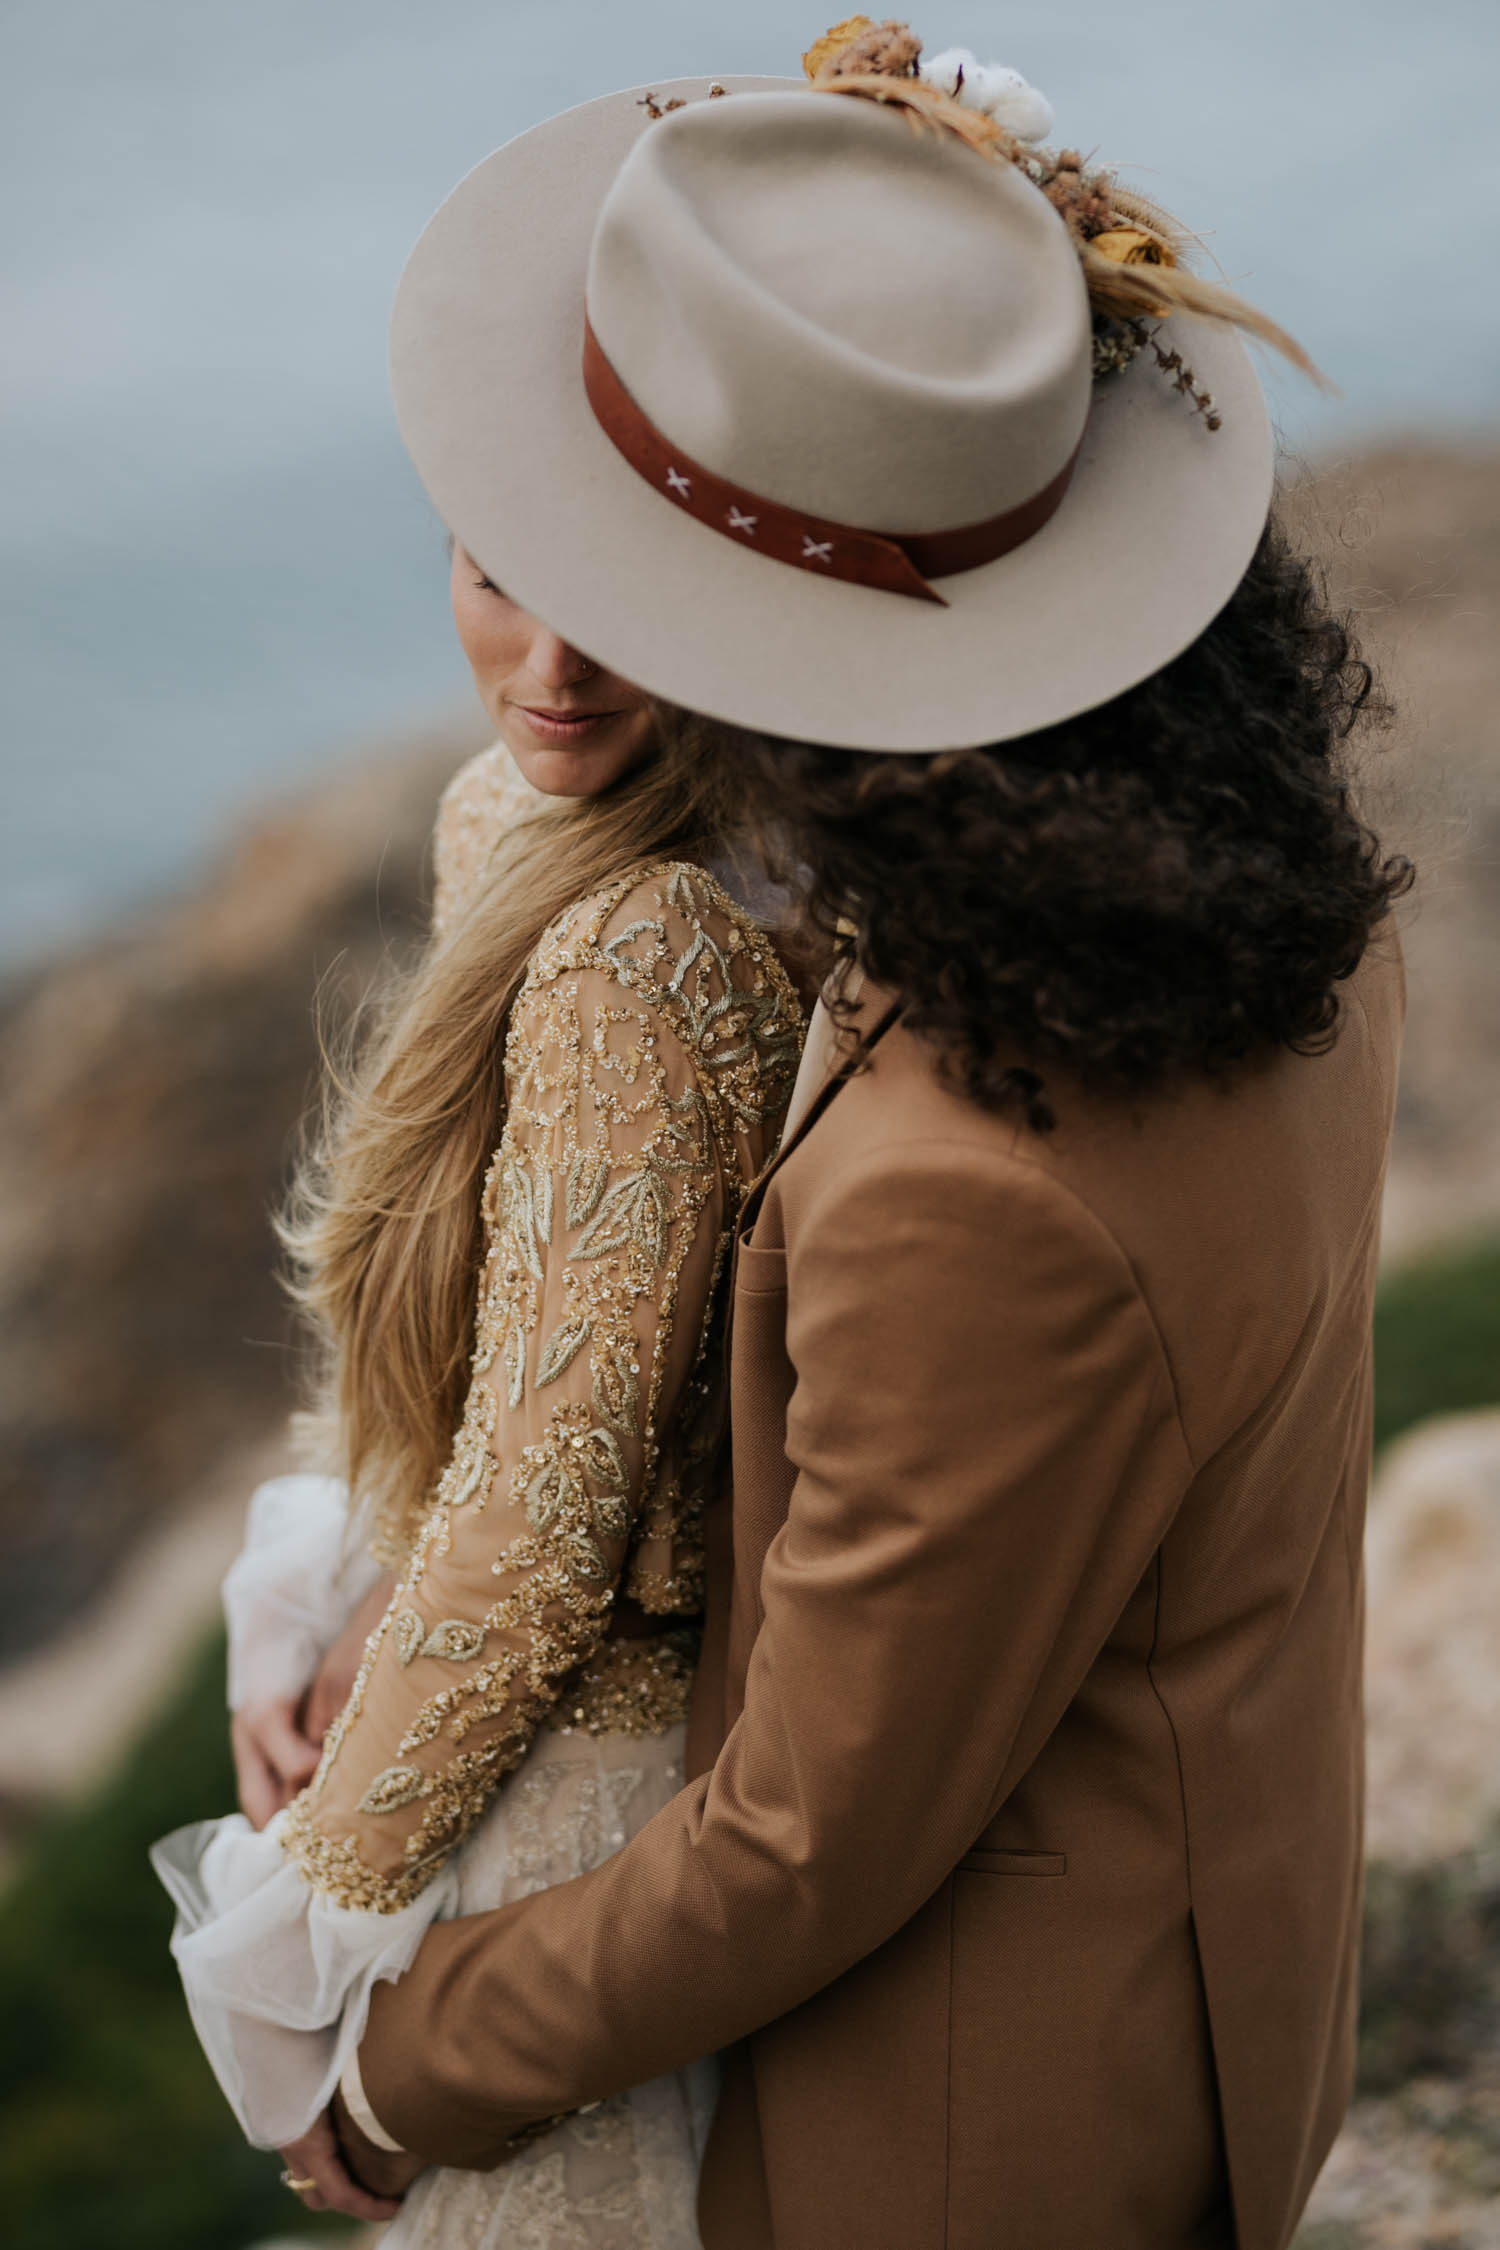 Photo by Vancouver Photographer of groom wearing brown suite, beige shirt, and felt hat holds bride wearing gypsy wedding dress with flared long sleeves, sheer skirt and gold detailed top at the ocean